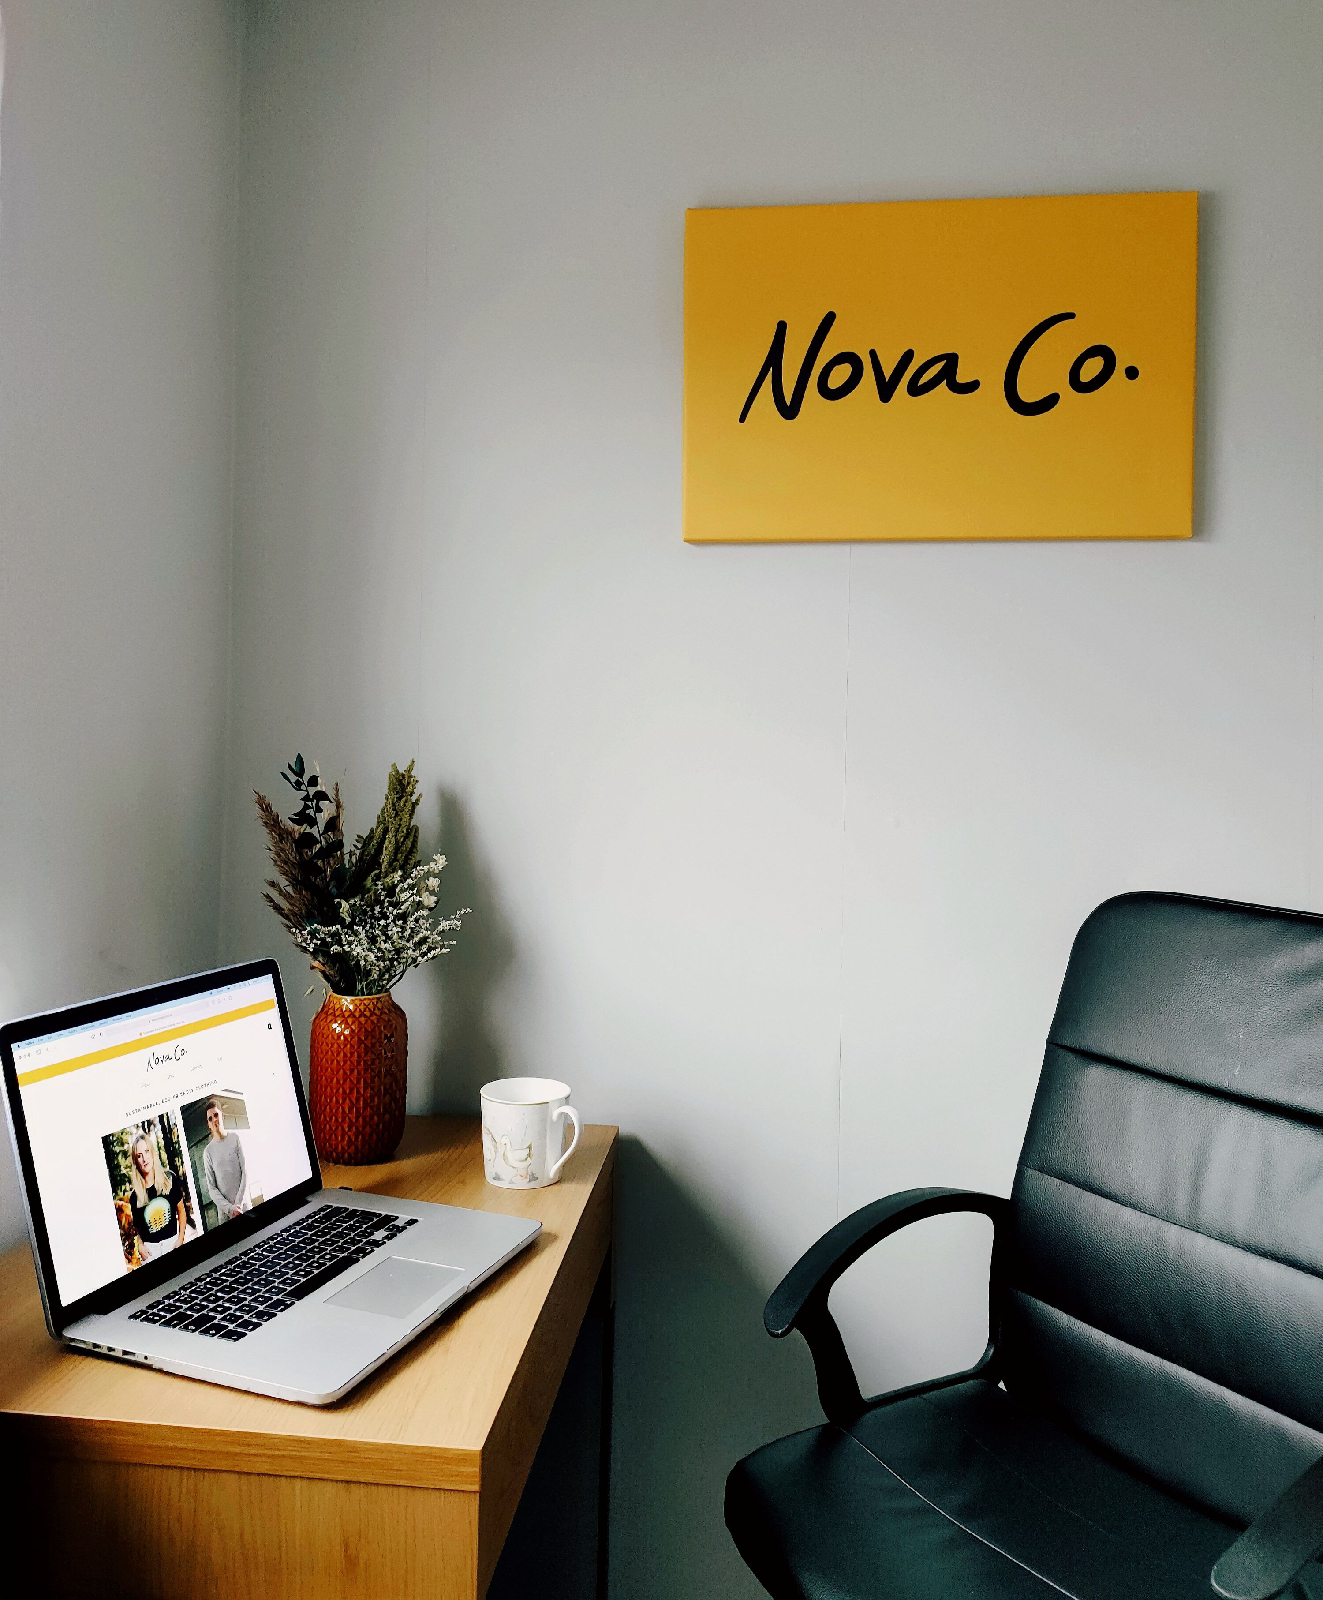 a desk and a chair with a canvas on the wall; there is a laptop and some flowers on the desk